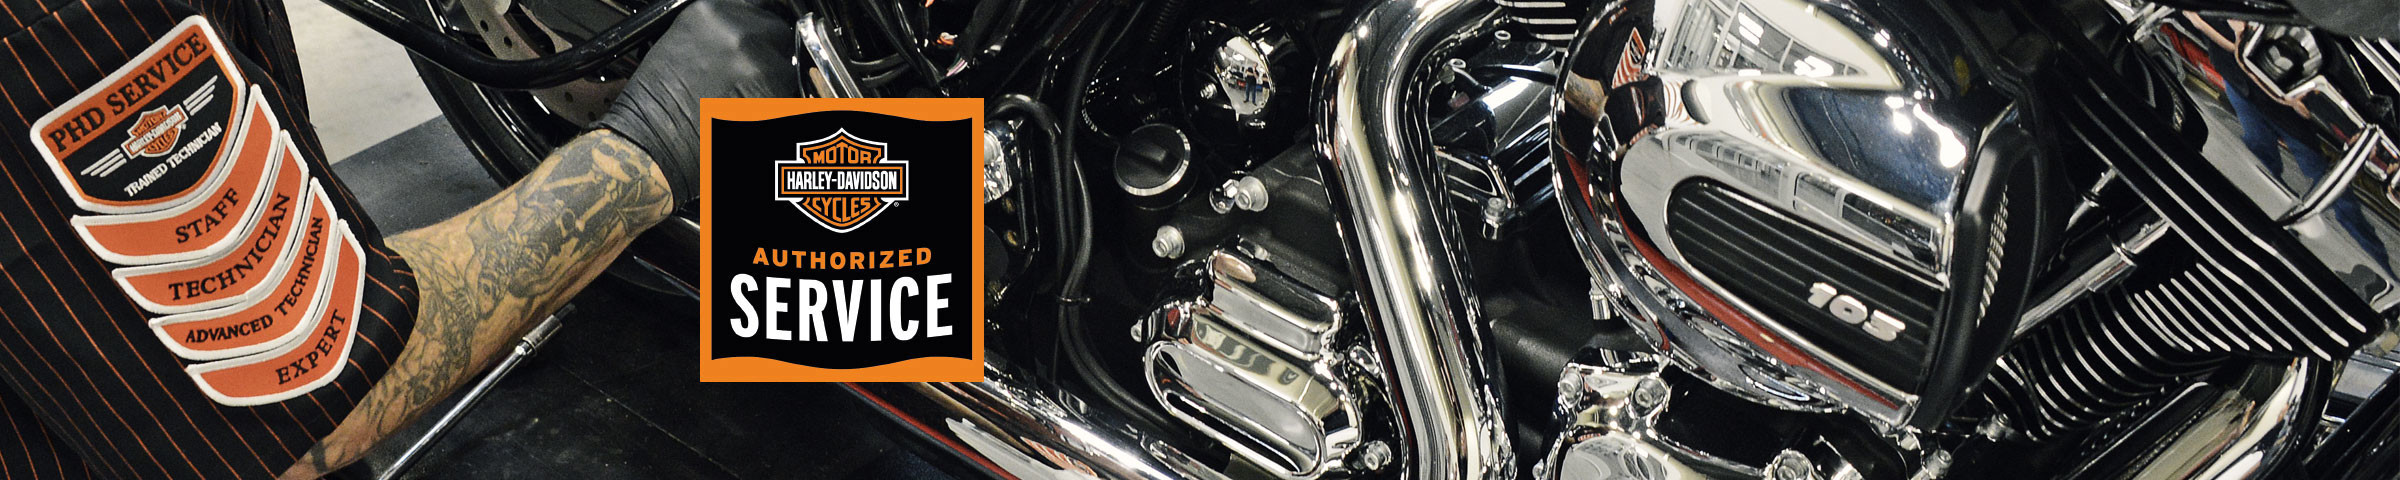 Service Department | Motorcycle Repair | Harley-Davidson® of Tampa